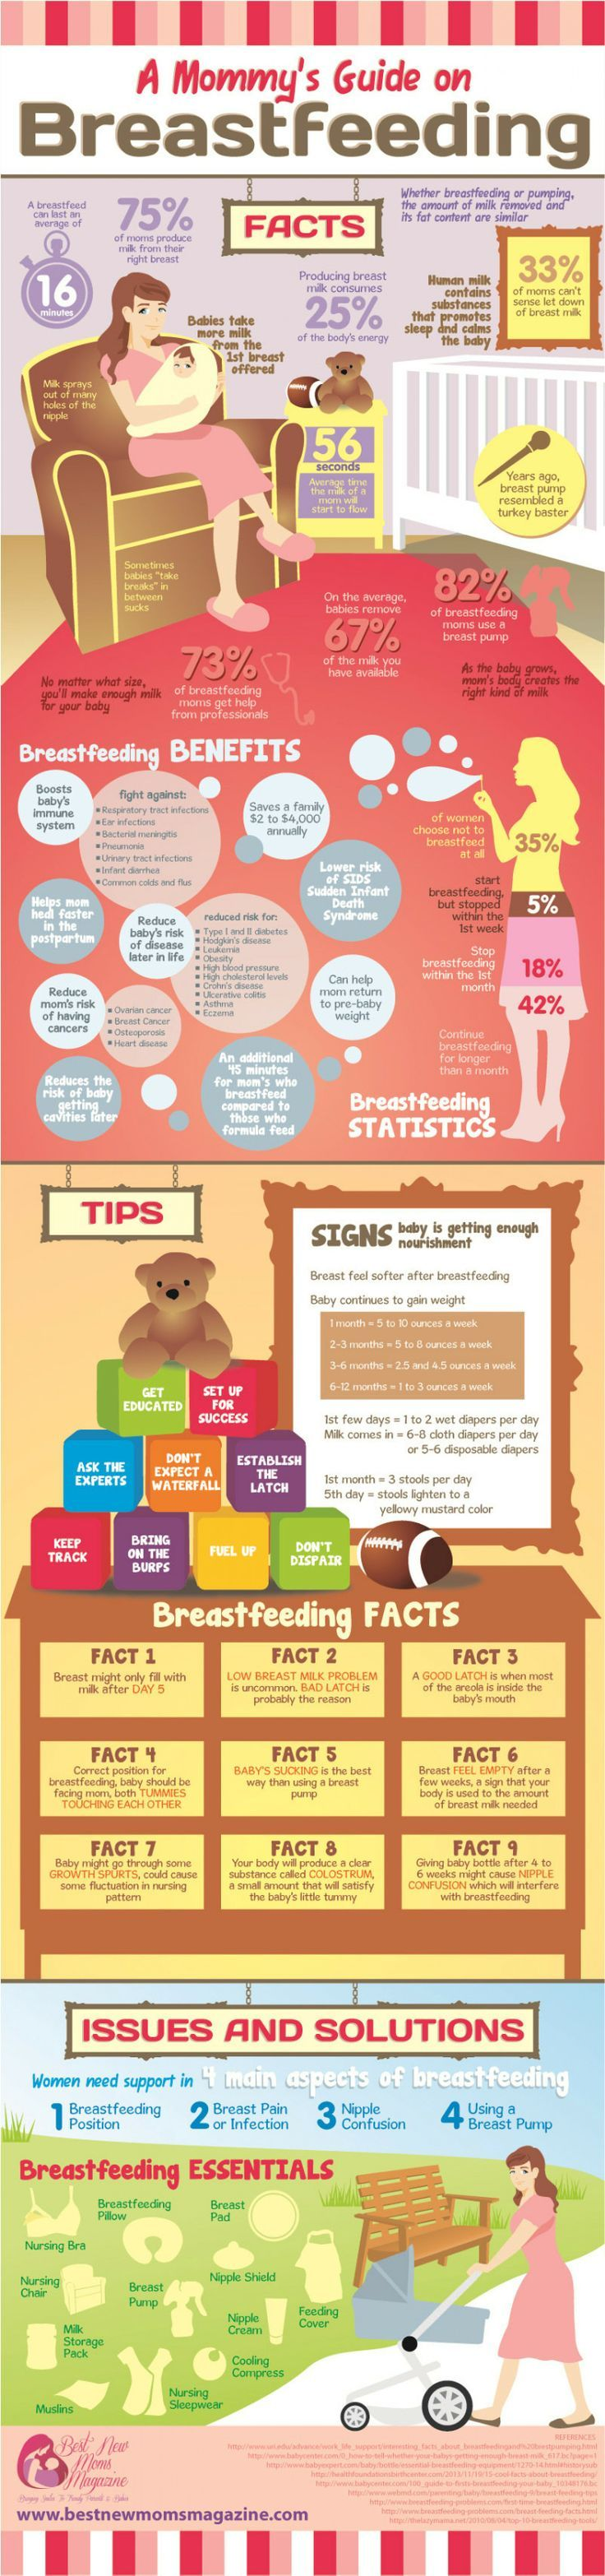 A Mommy's Guide on Breastfeeding